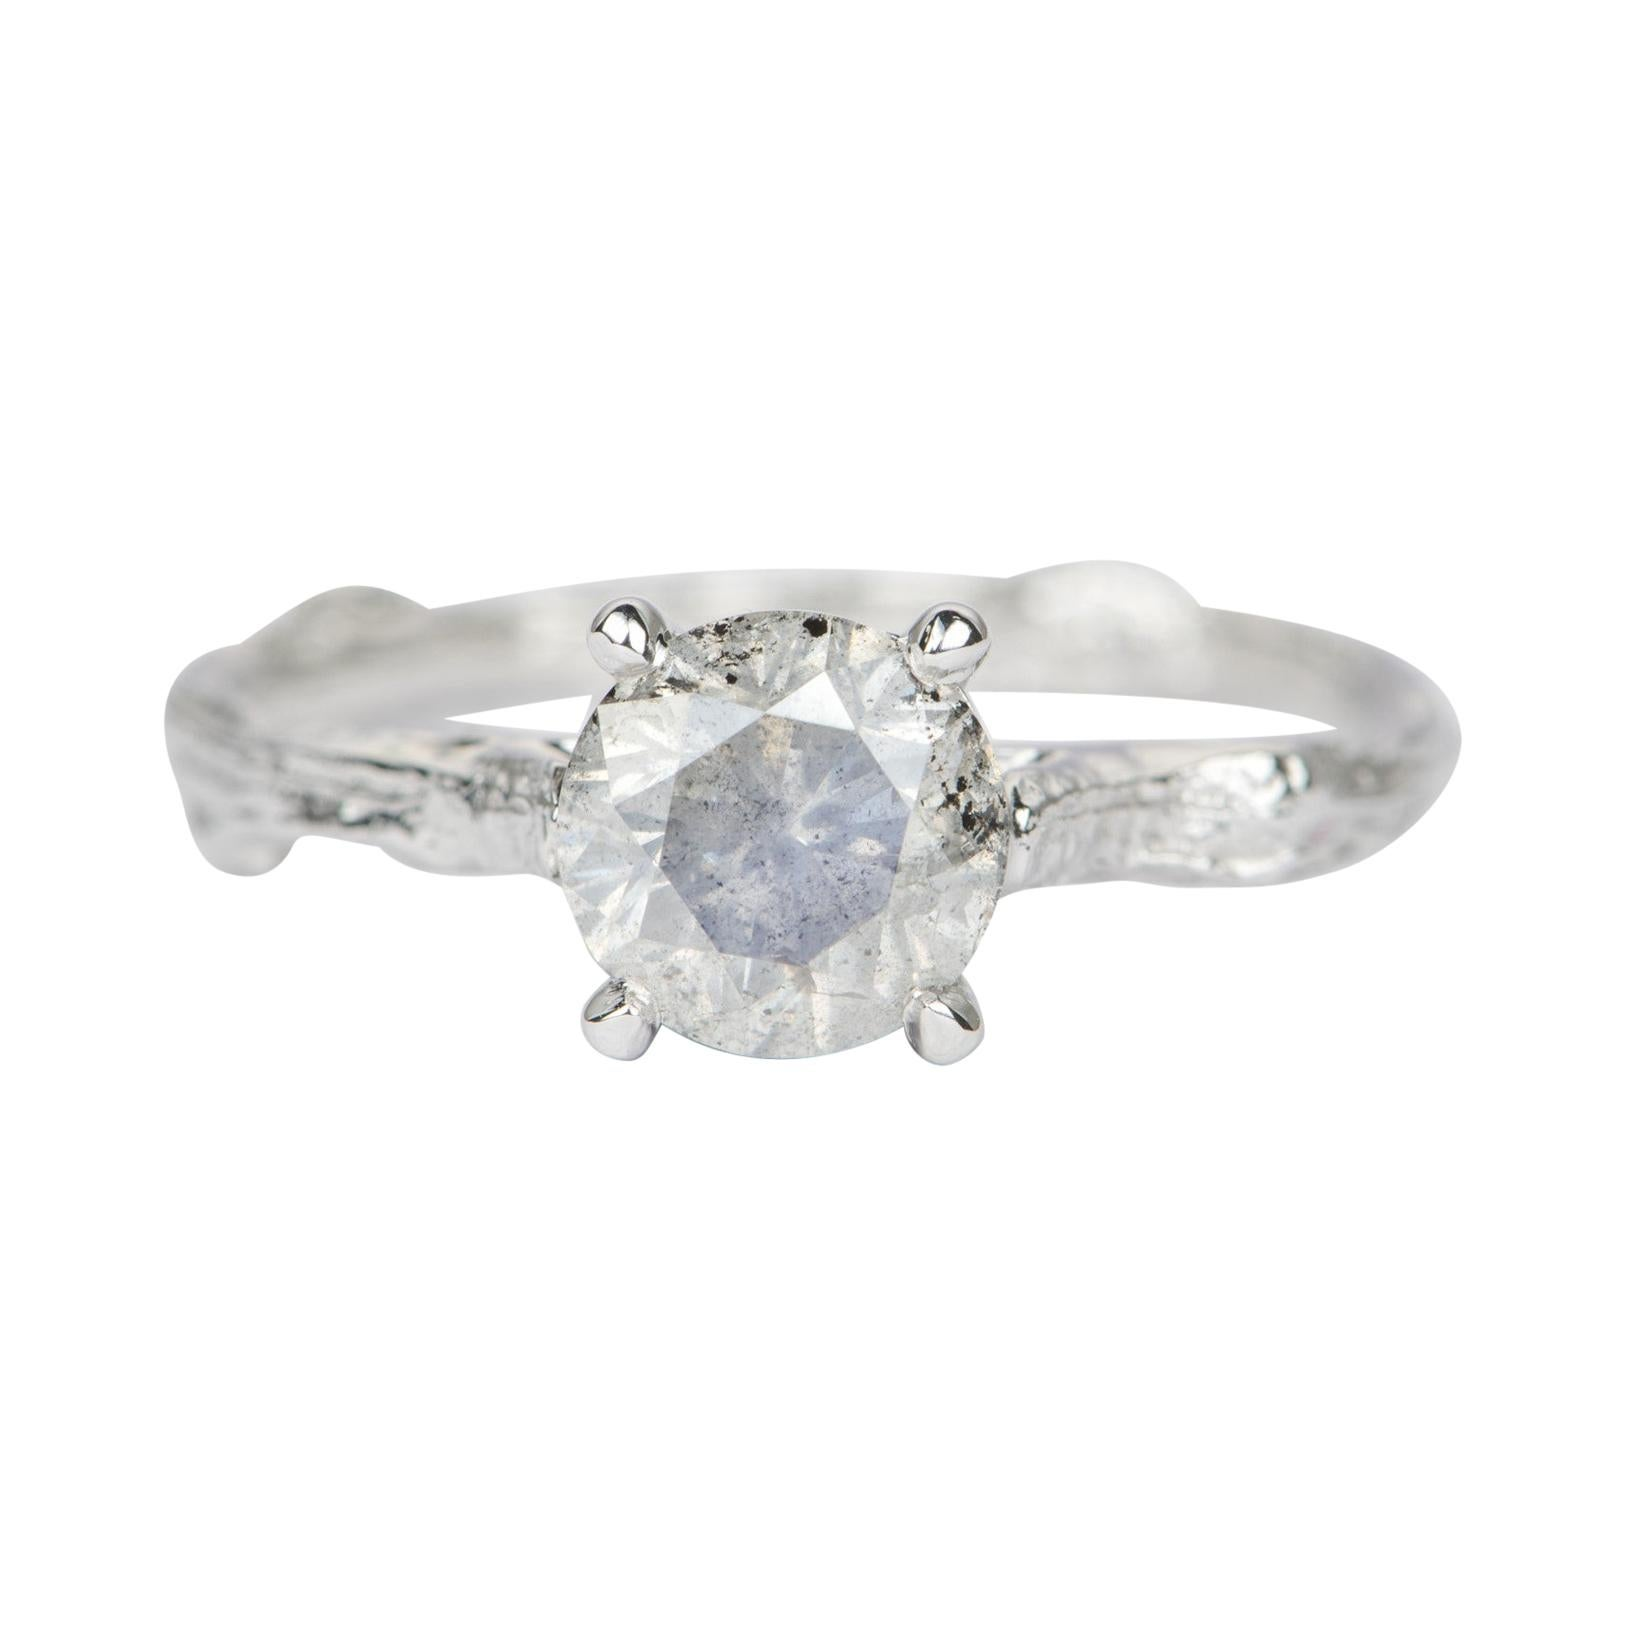 1.4ct Solitaire Salt and Pepper Diamond 14k White Gold Engagement Ring AD2196-1